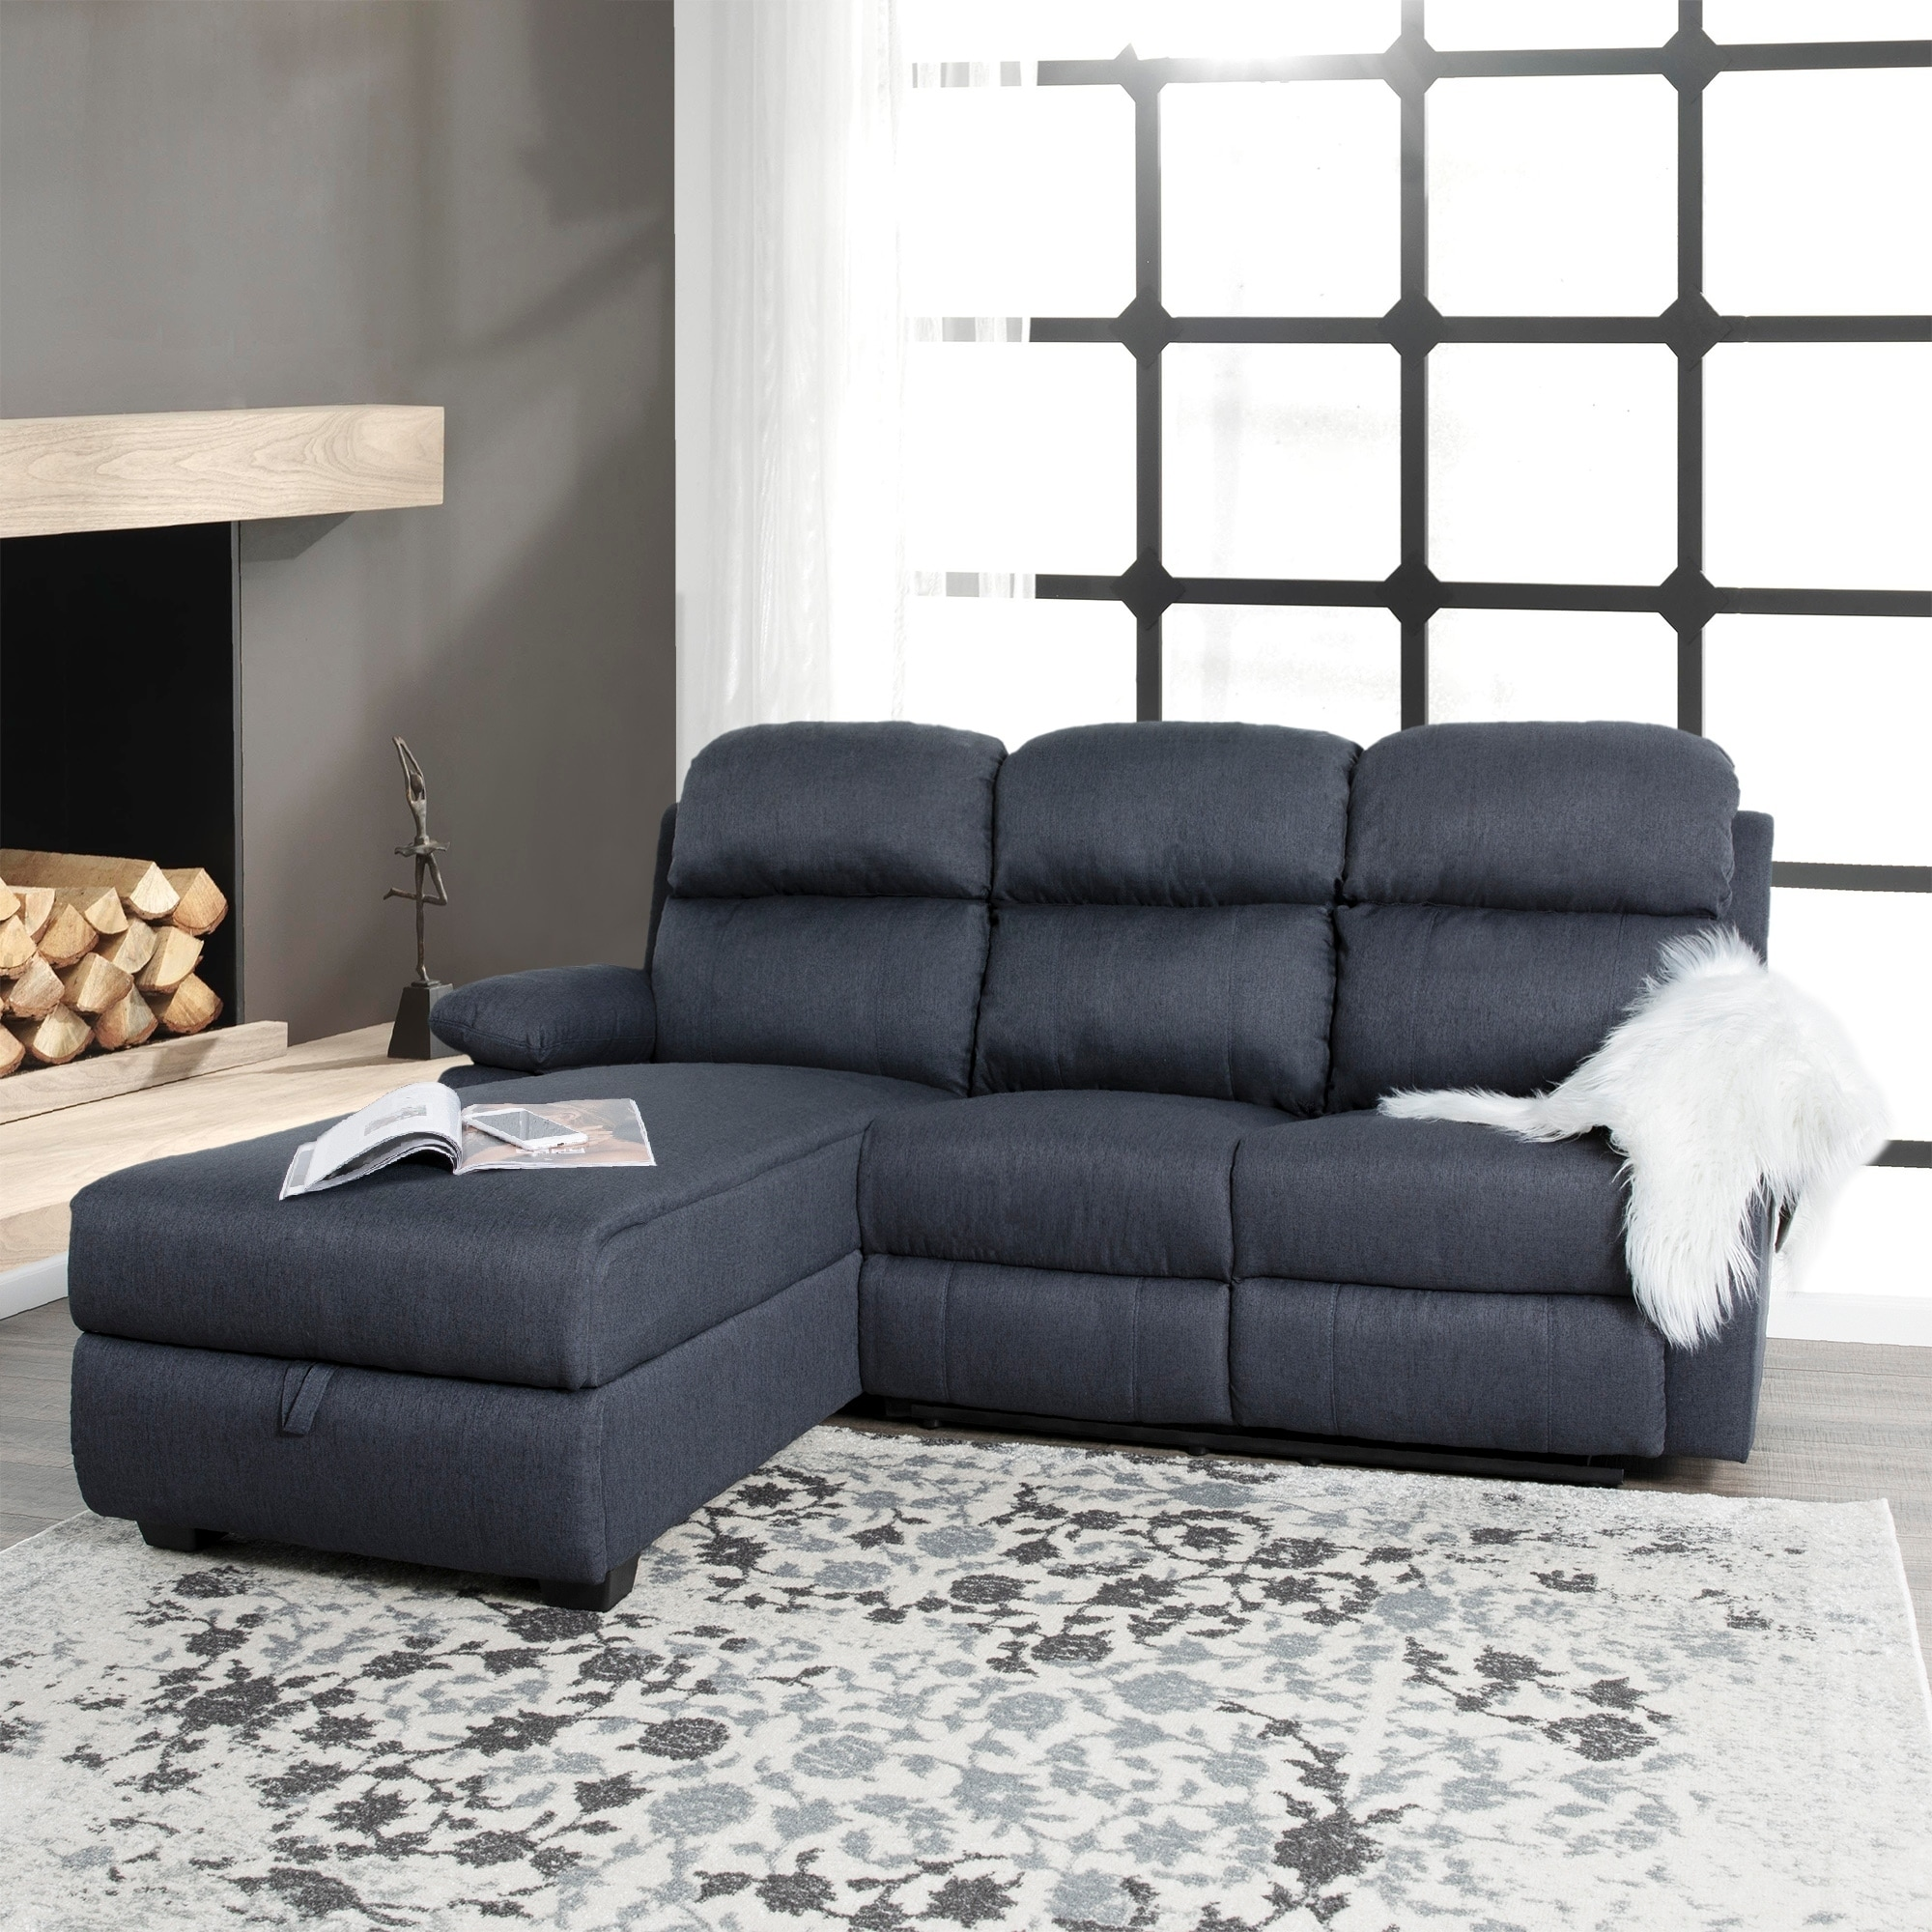 melody recliner l shaped corner sectional sofa with storage 66 x 80 x 40